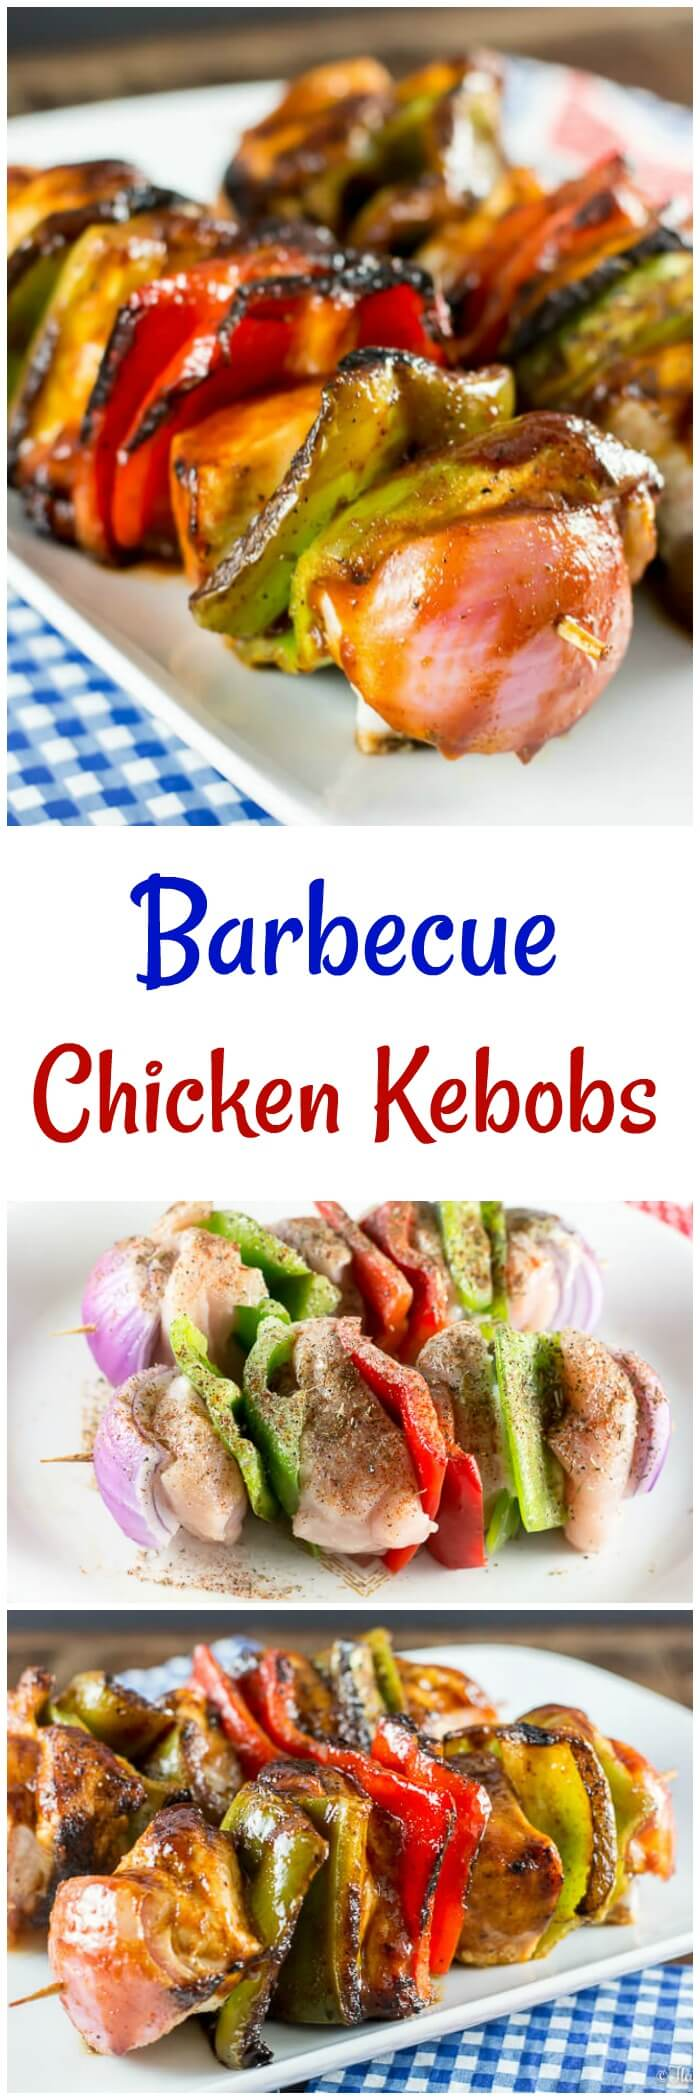 Barbecue Chicken Kebobs